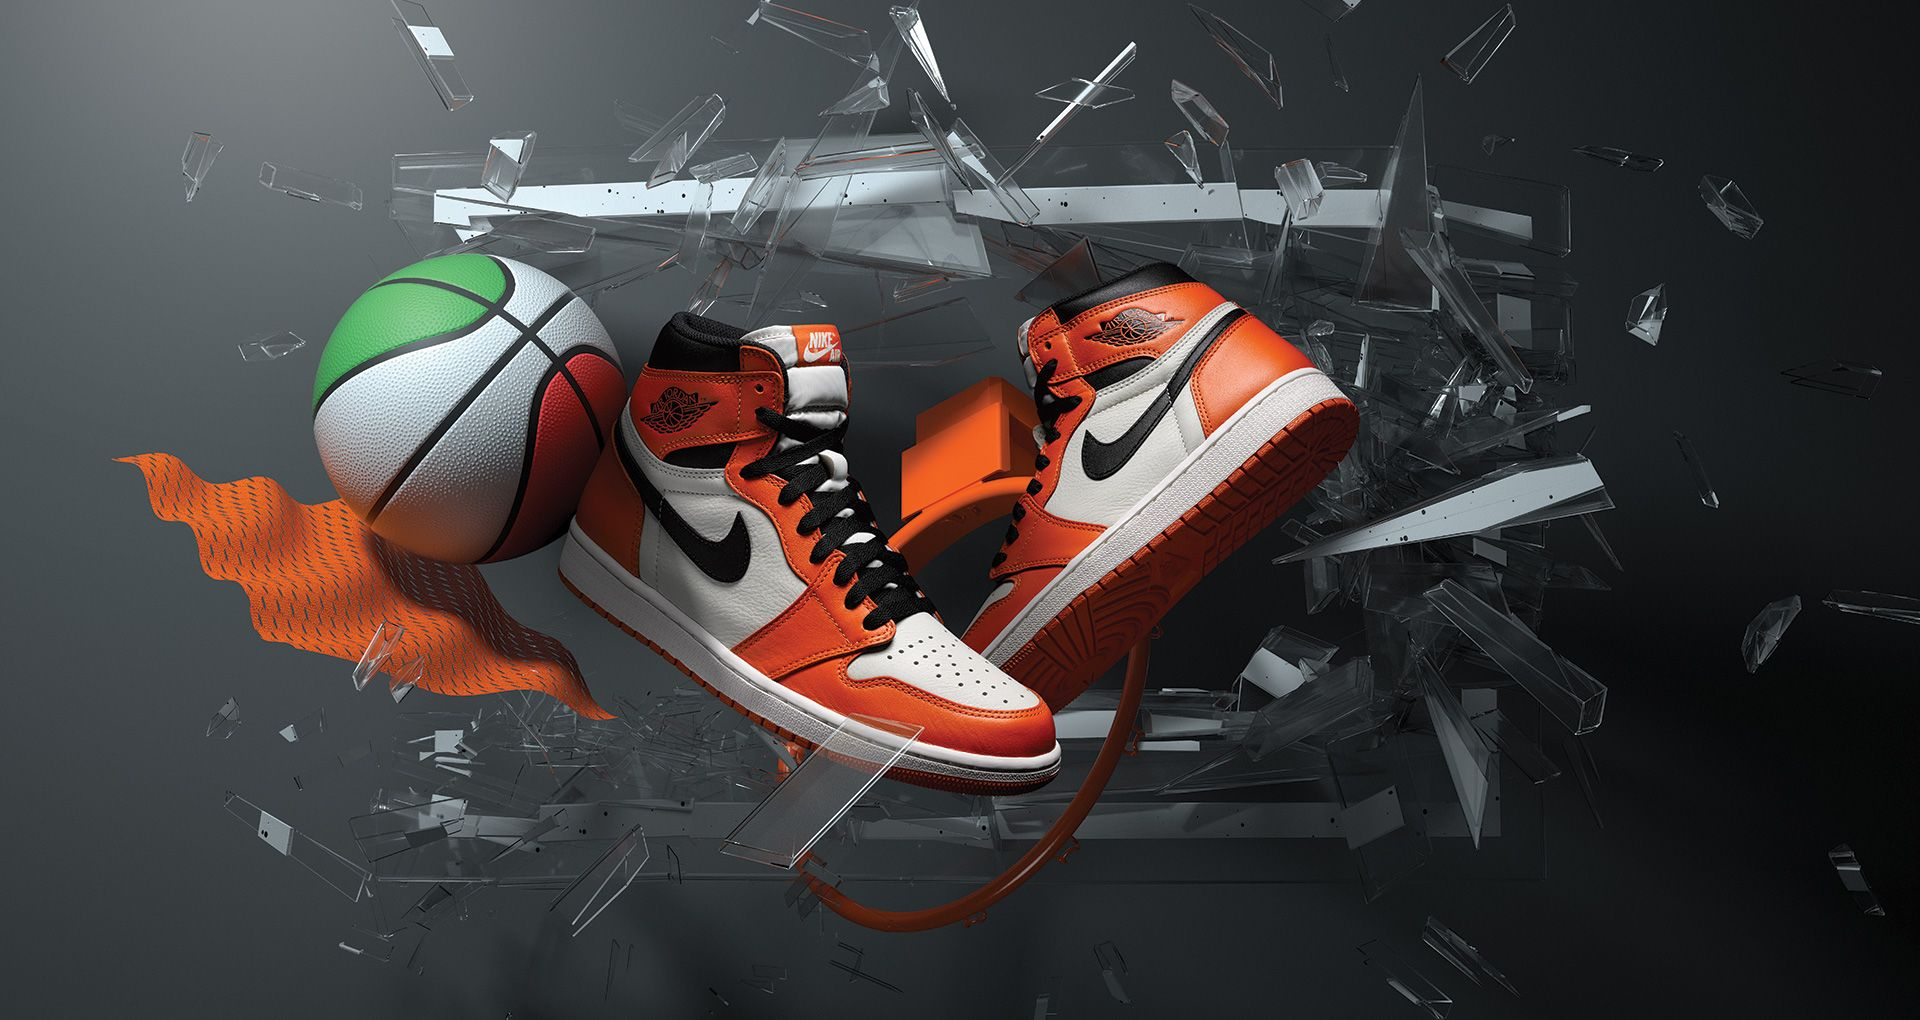 ff3b52f4c3f Air Jordan 1 'Shattered Backboard Away' Release Date. Nike⁠+ SNKRS